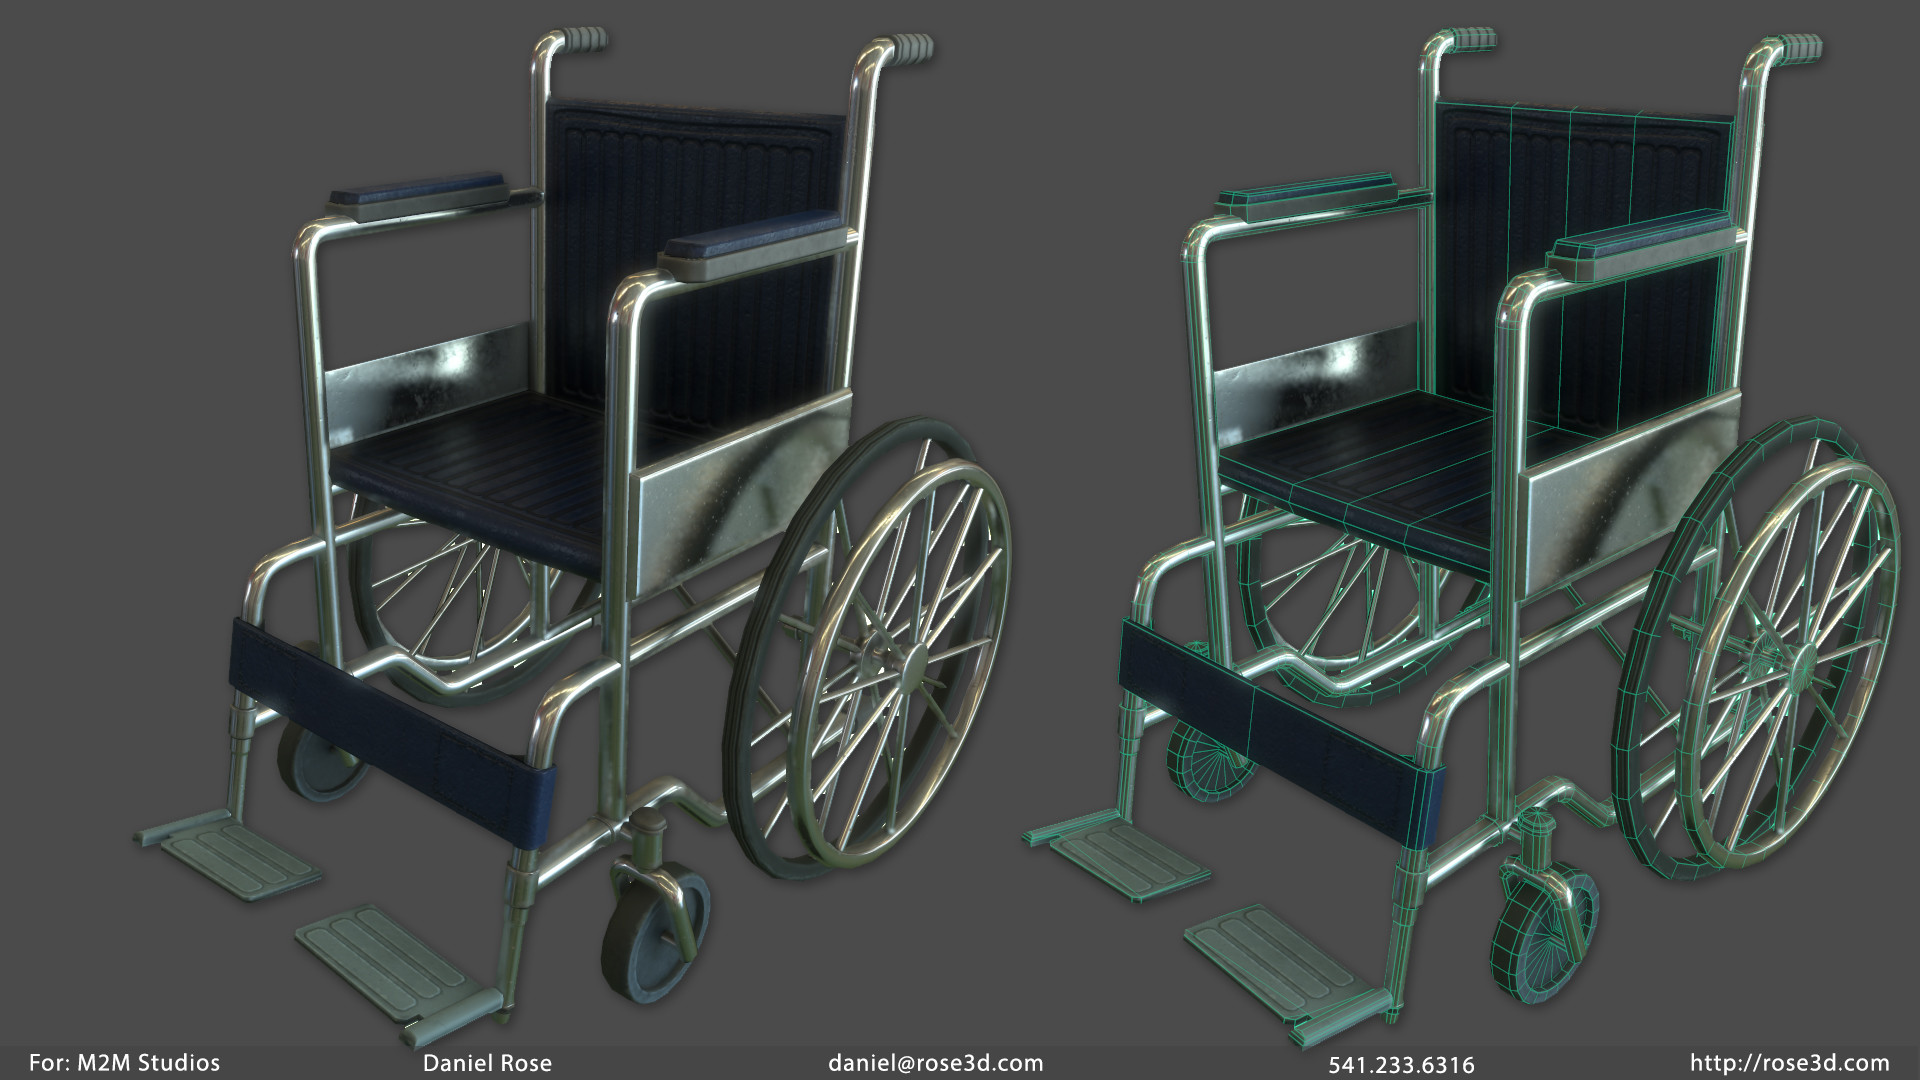 Daniel rose wheelchair prop